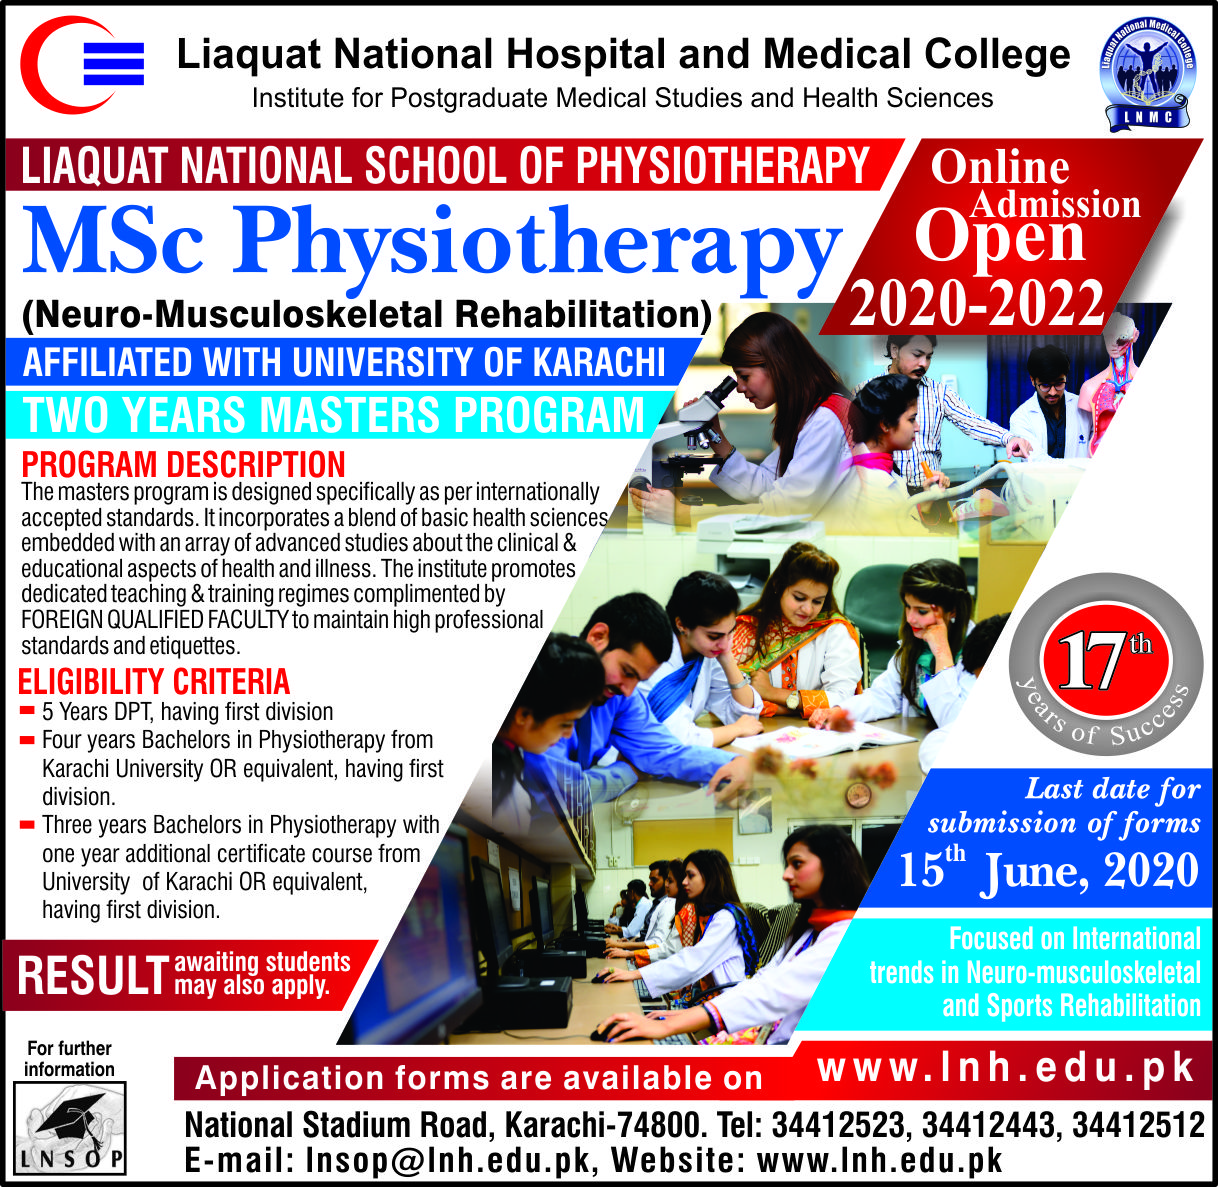 Online Admissions Open in M.Sc. Physiotherapy (2020-2022)